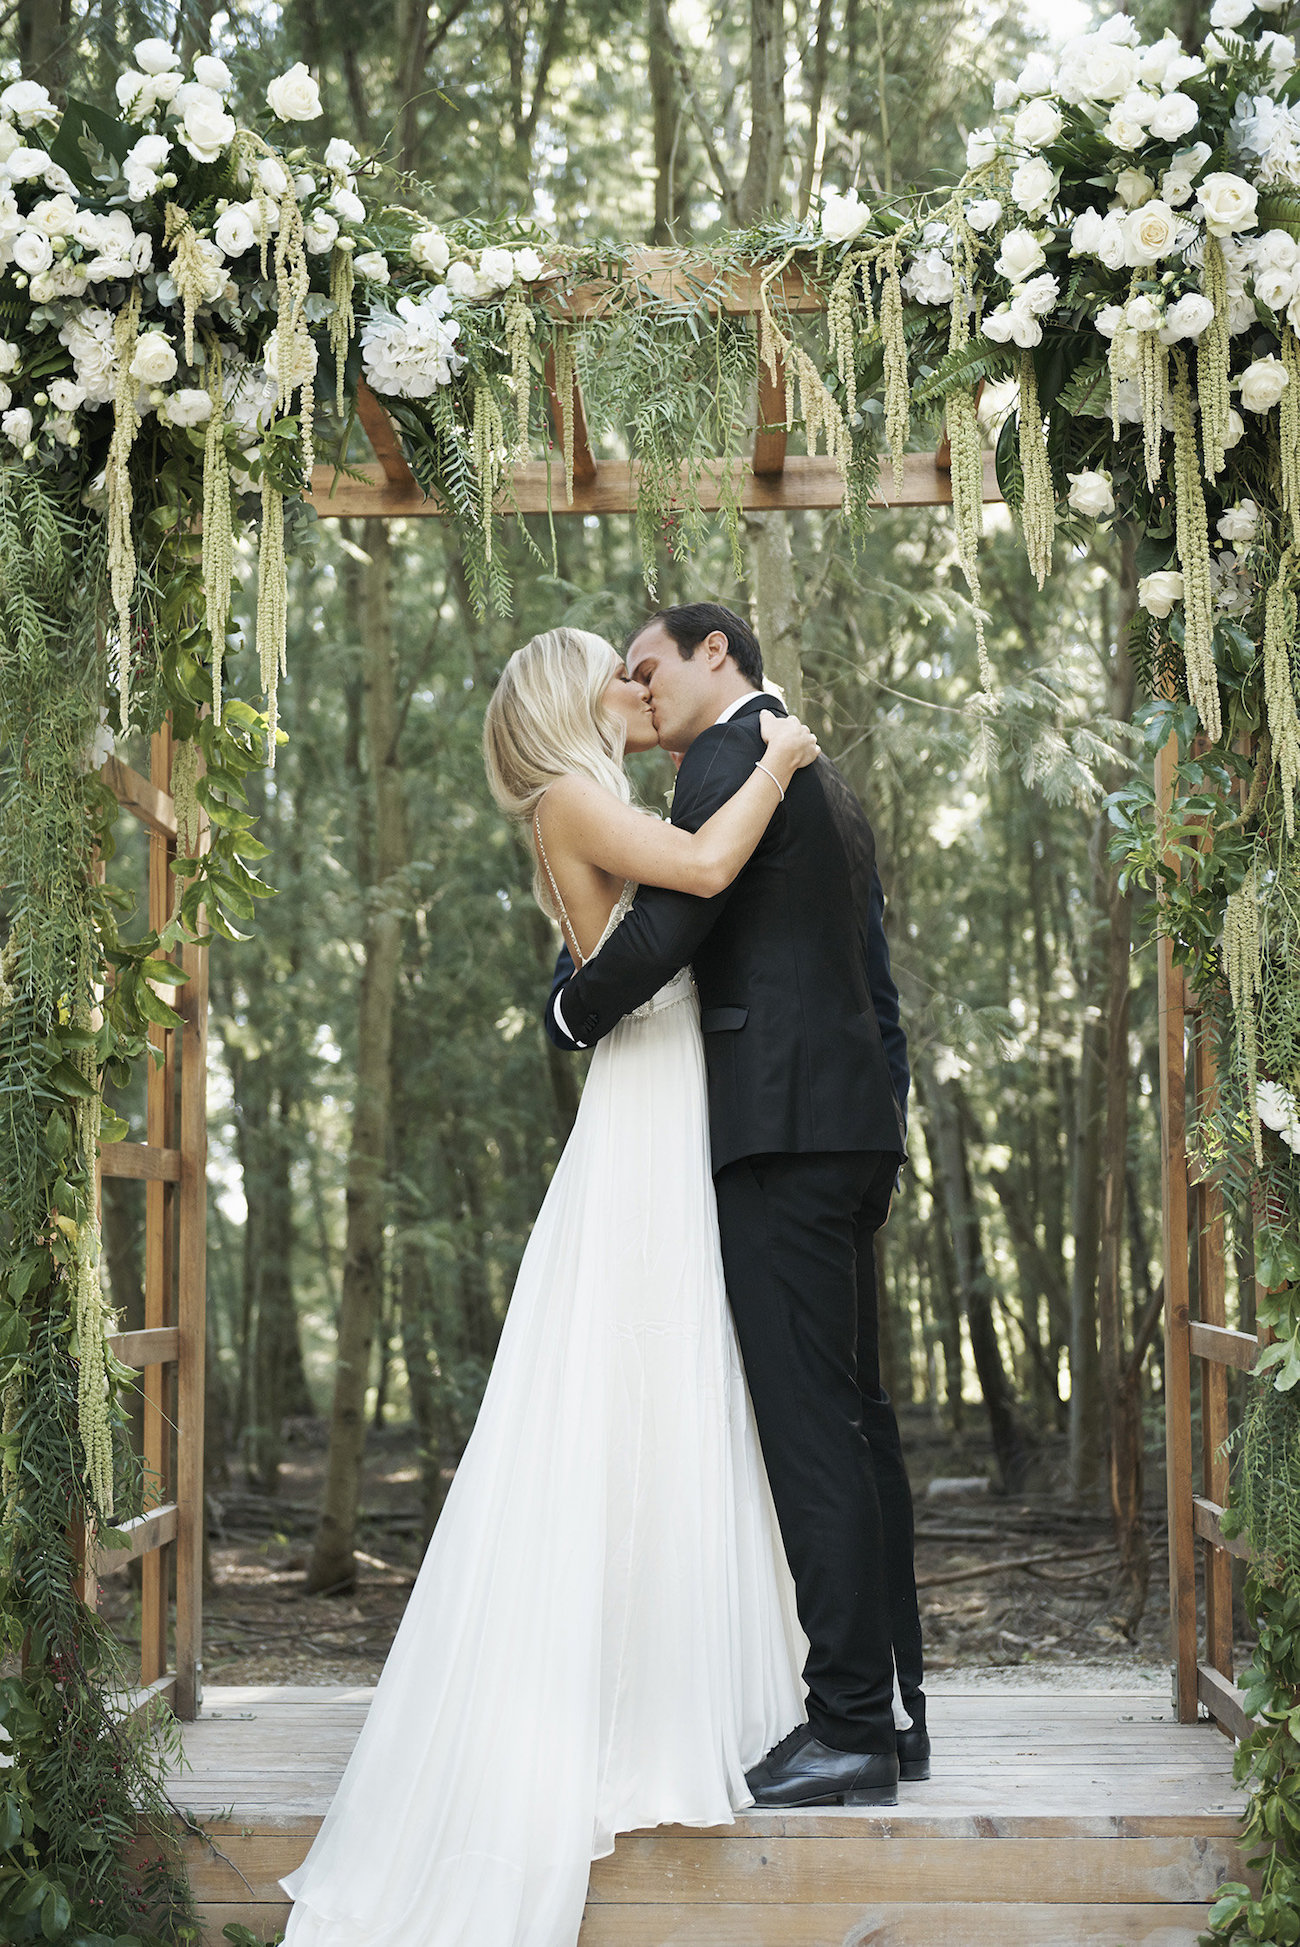 Forest Wedding Ceremony Floral Arch   Image: Knit Together Photography